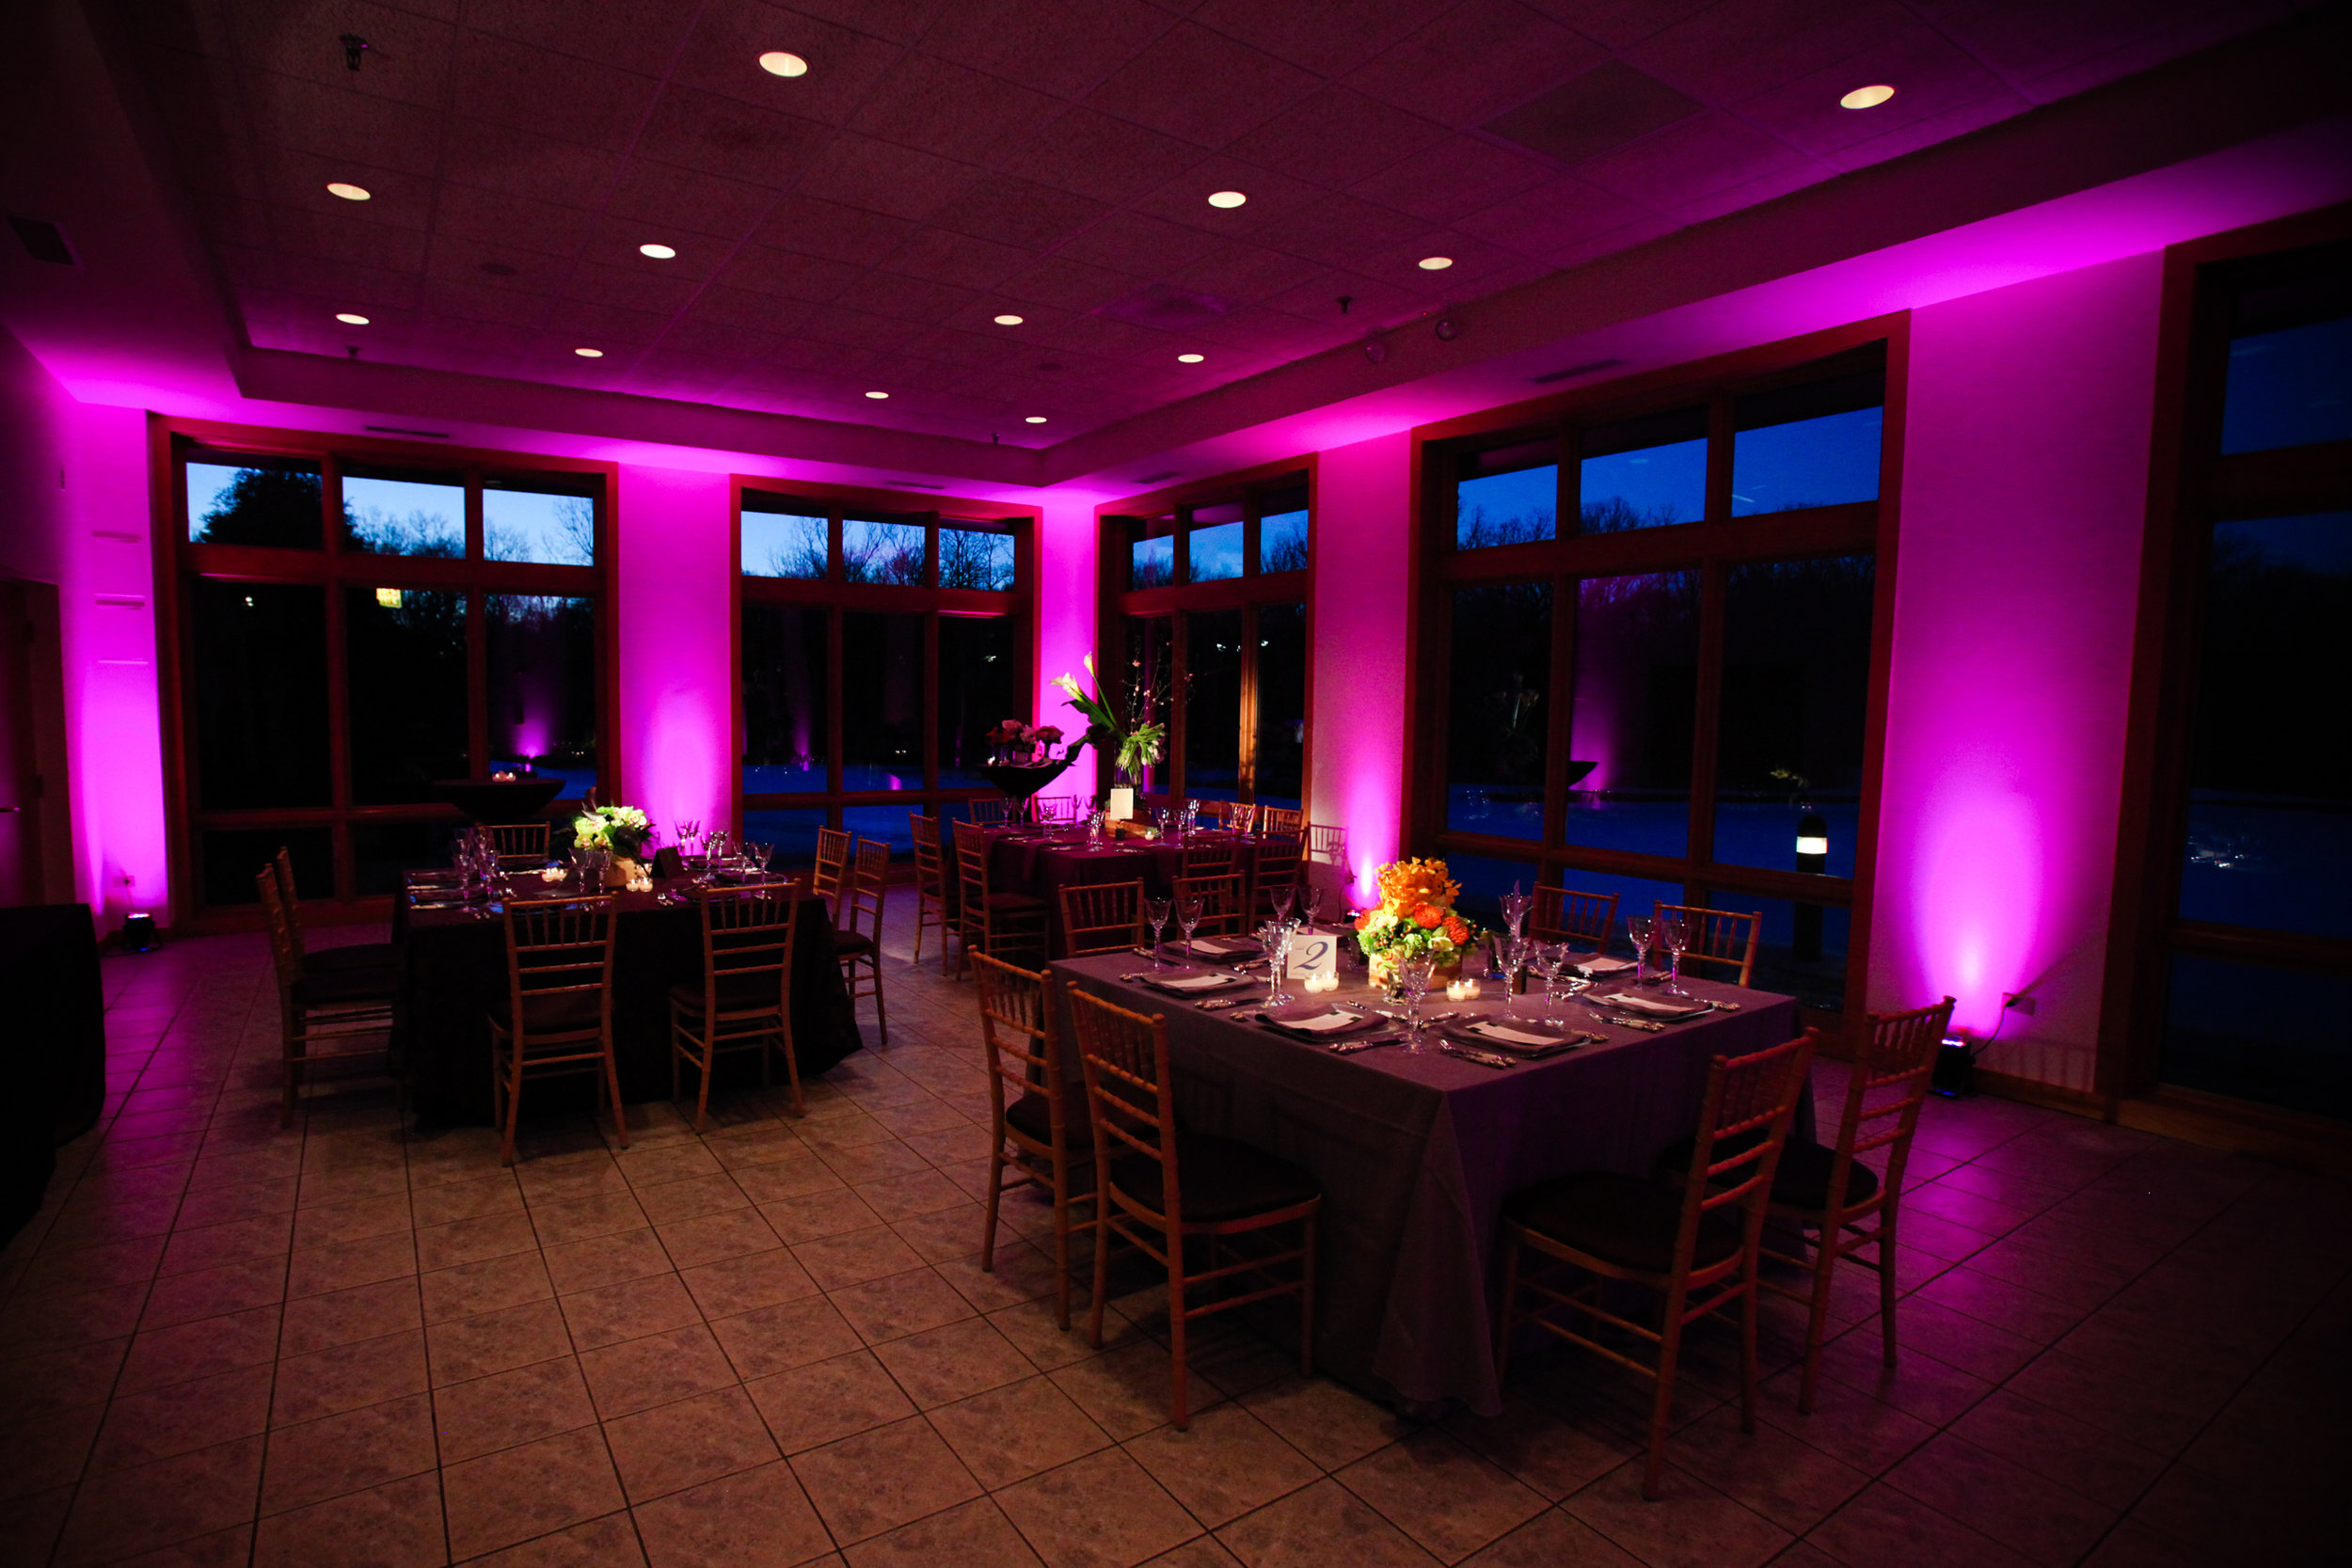 Up Lighting - Up Lighting is a perfect way to change the ambiance of a room. You can fill the room with color or just add accents to certain areas. Let us help you choose the right ammount of lighting for your event.